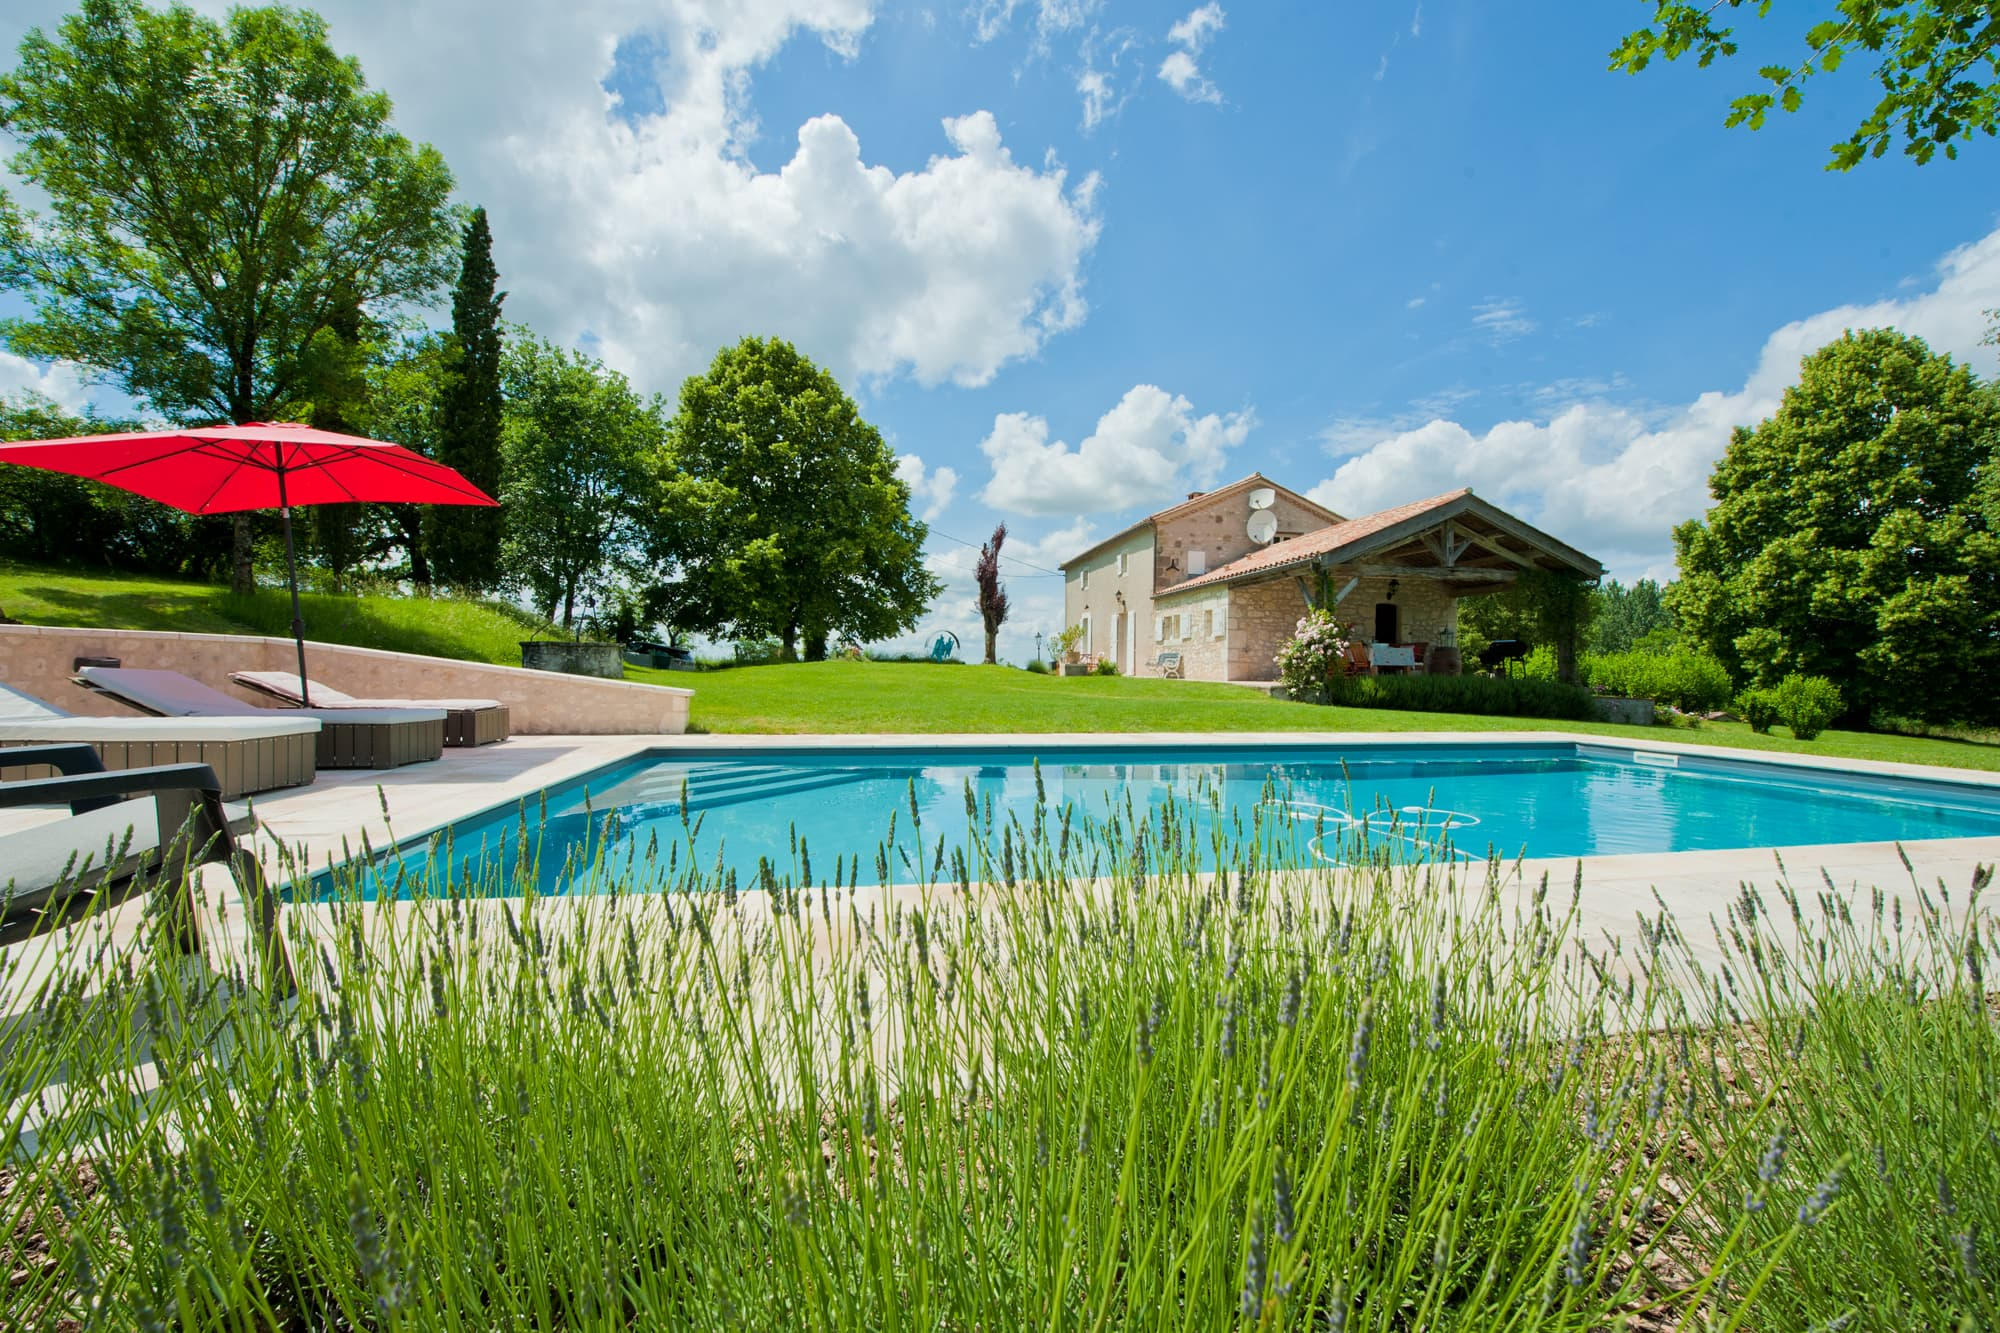 Self Catering Holiday Rentals With Private Pools In France Pure France